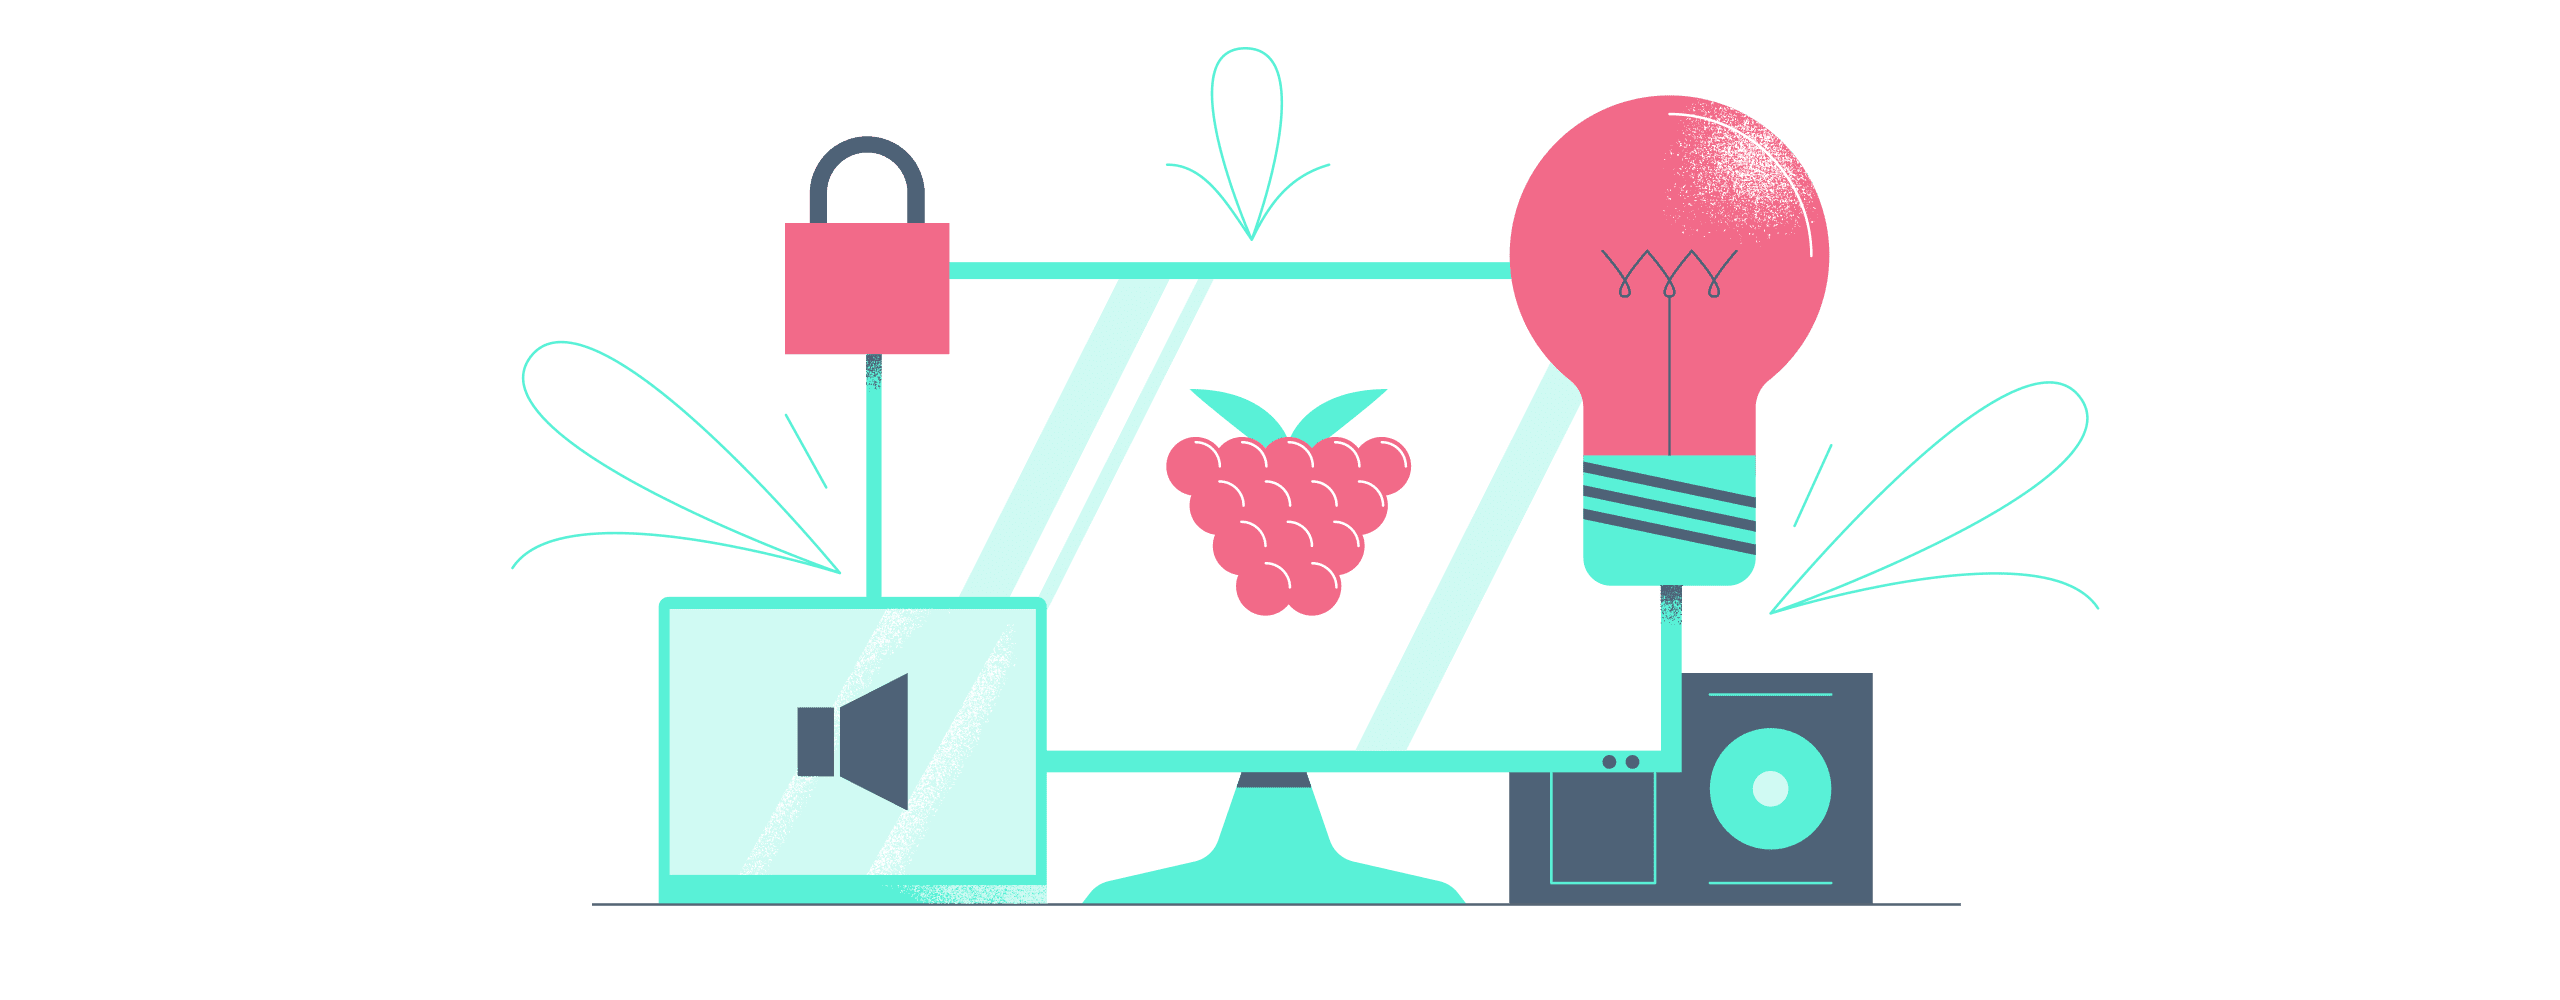 How We Improved Our Raspberry Pi-based Smart Office with Node.js